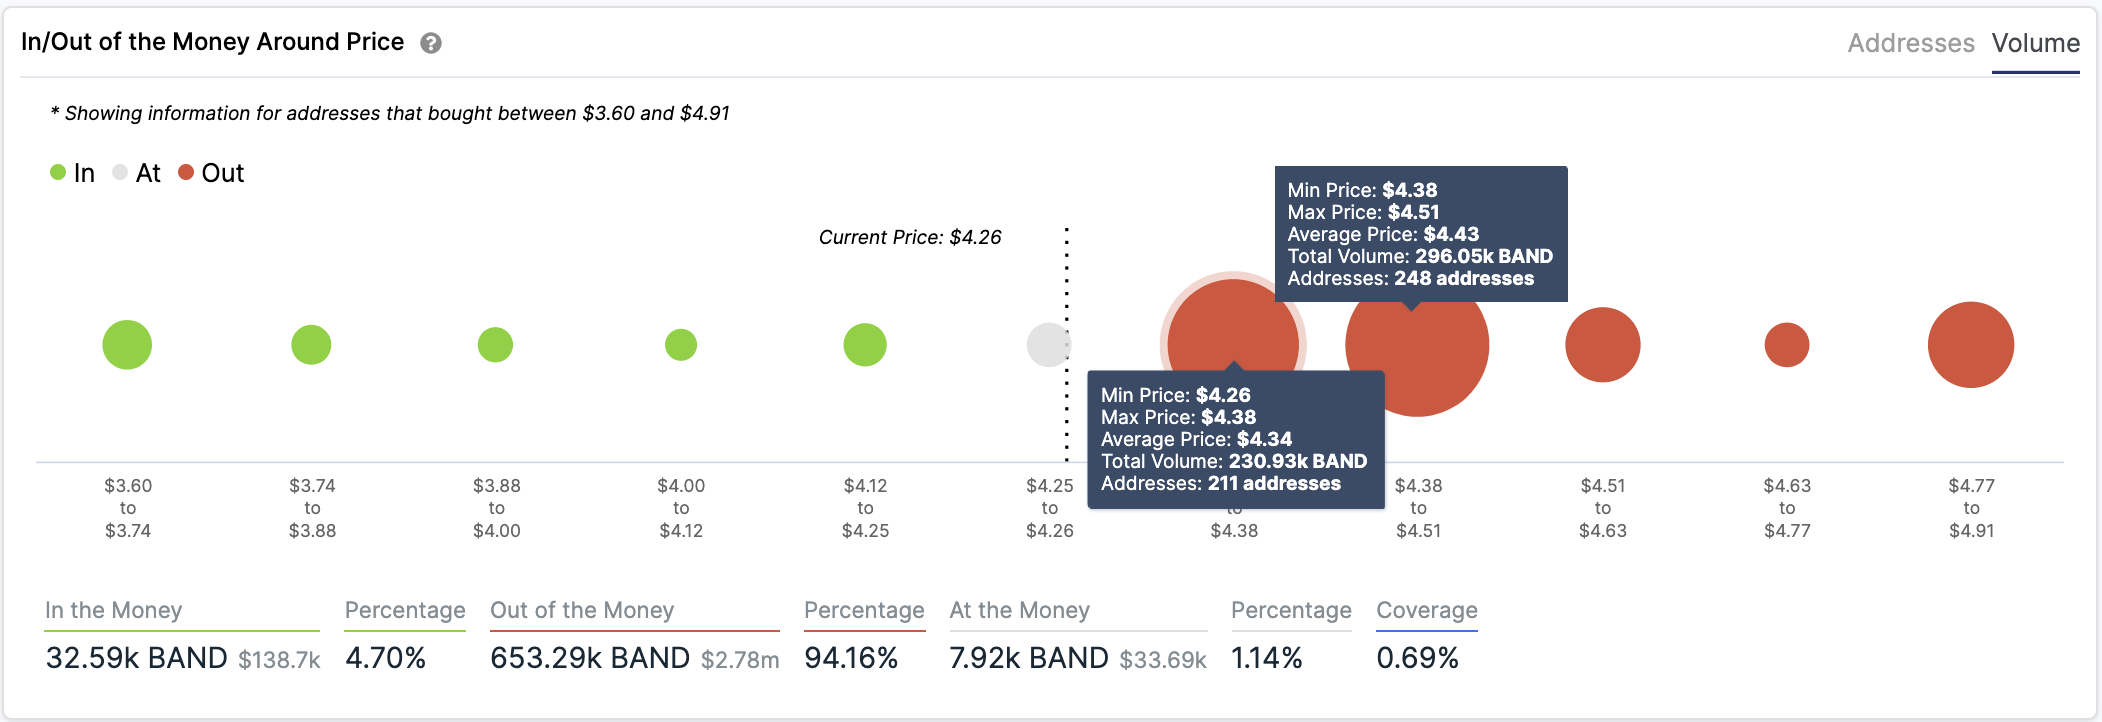 BAND In/Out of the Money Around Price